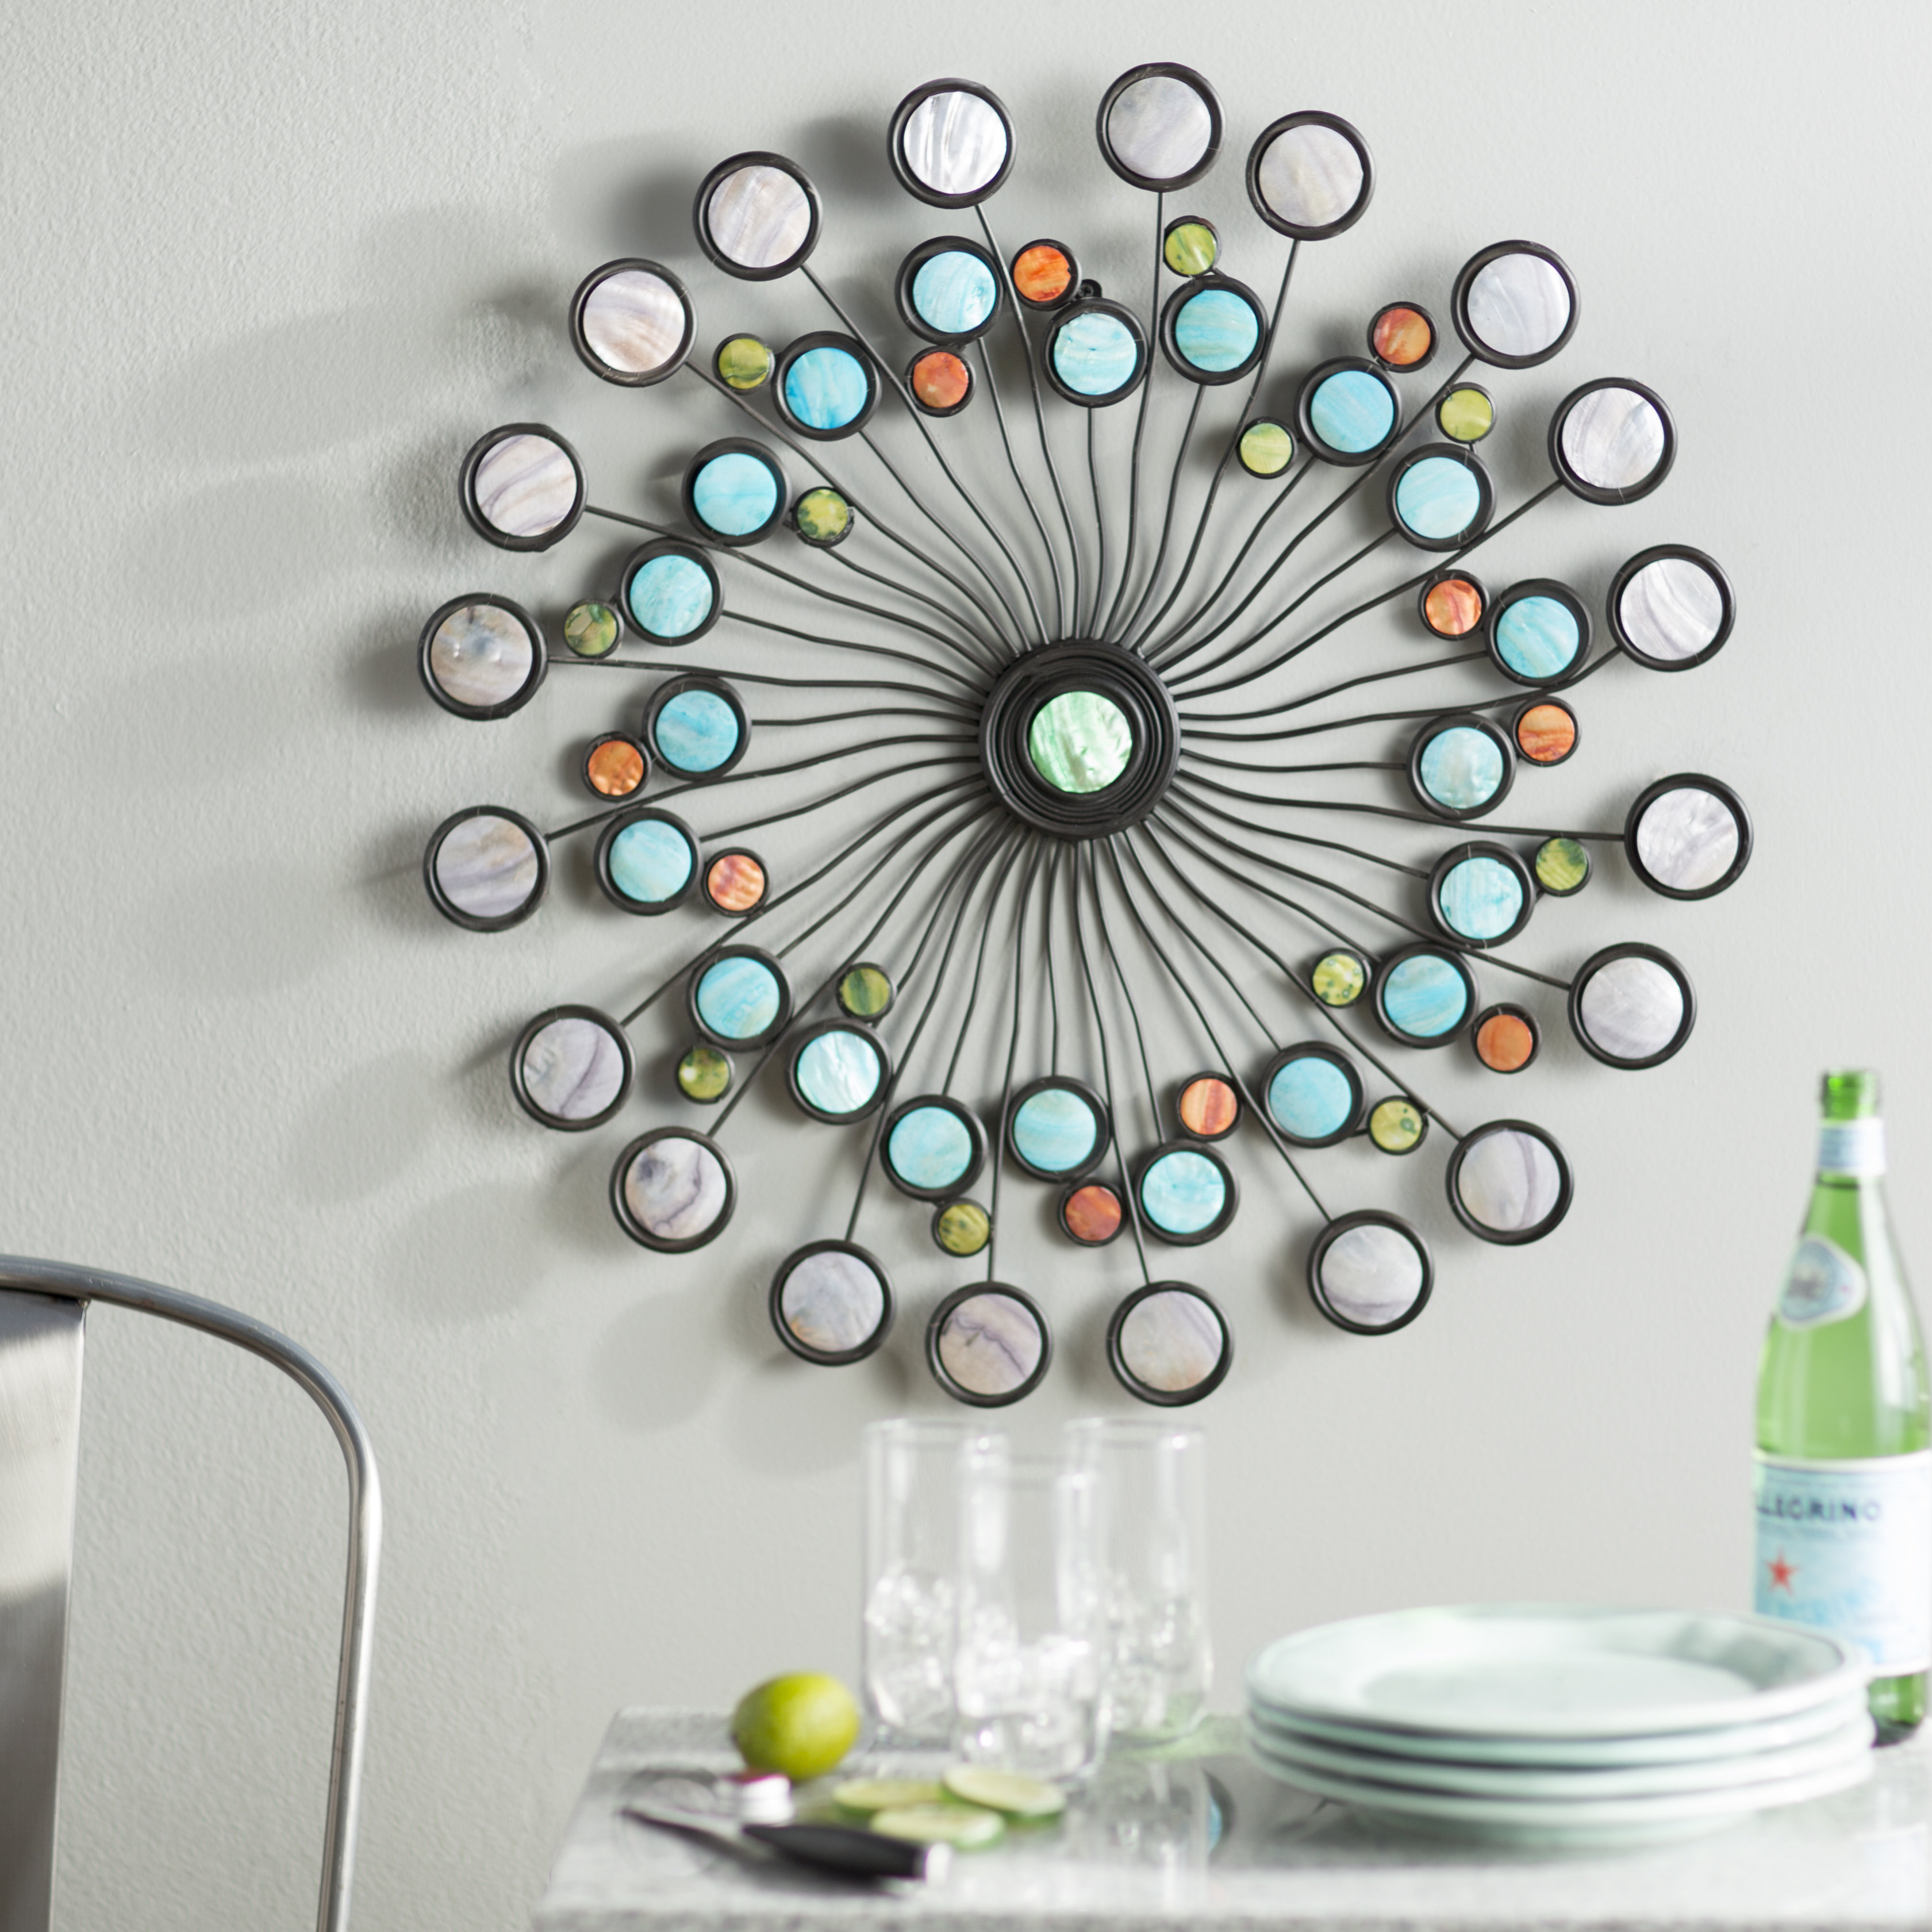 Cozy Ideas Metal Wall Decor Latitude Run Modern D Cor With Wonderful World Wall Decor By Latitude Run (View 19 of 30)